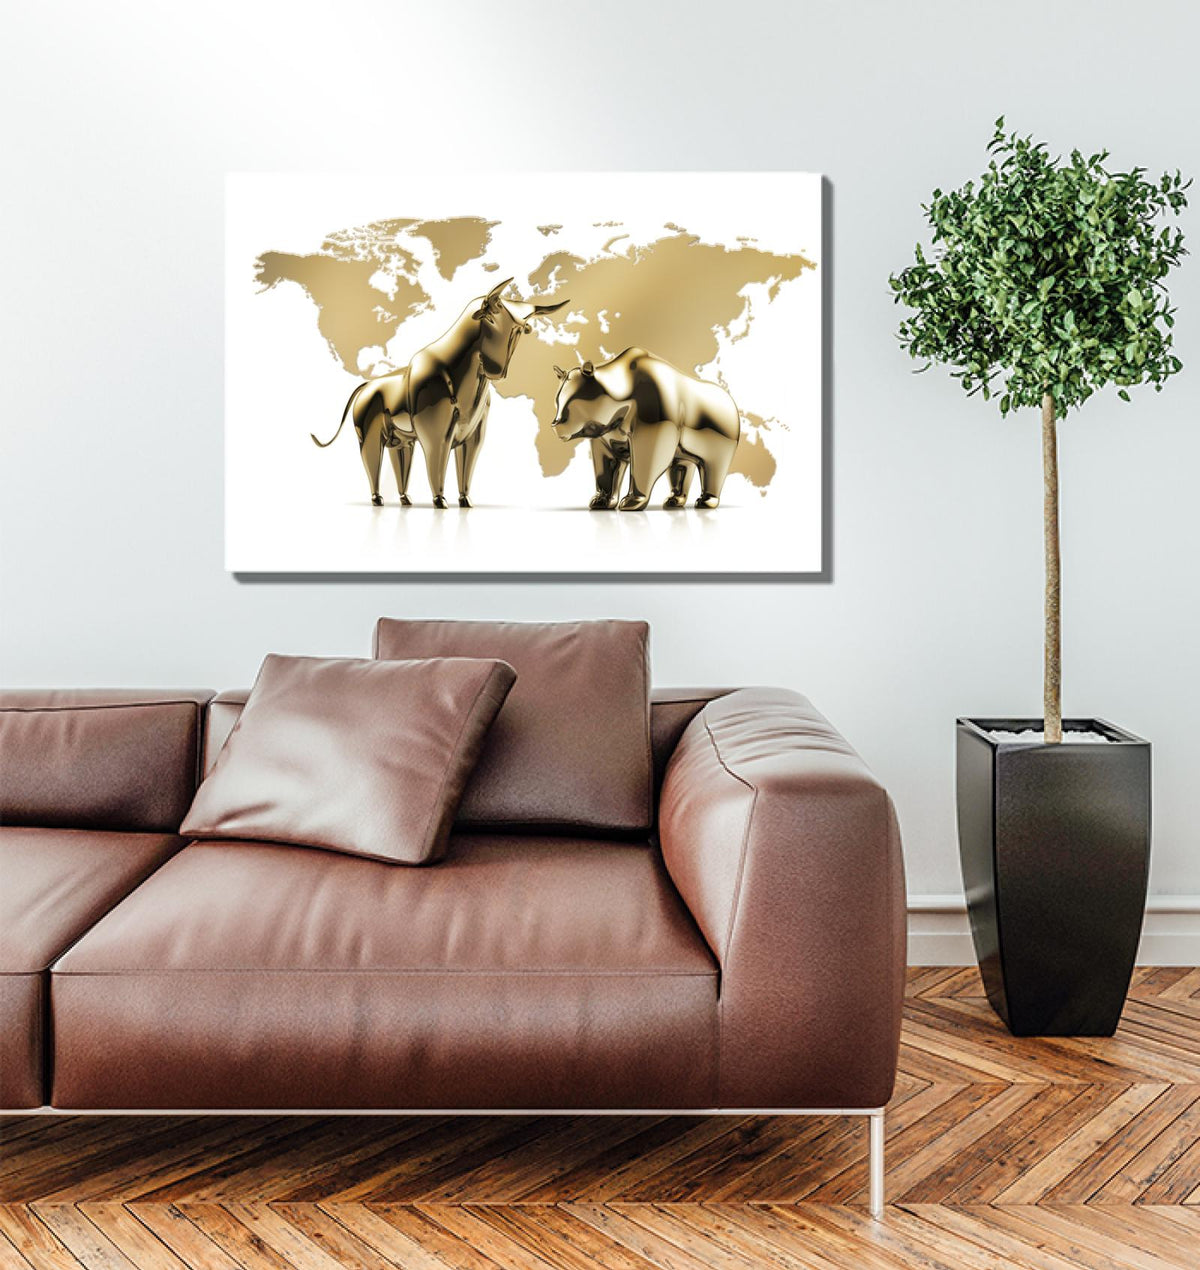 Golden Global Money Markets Acrylic Wall Art